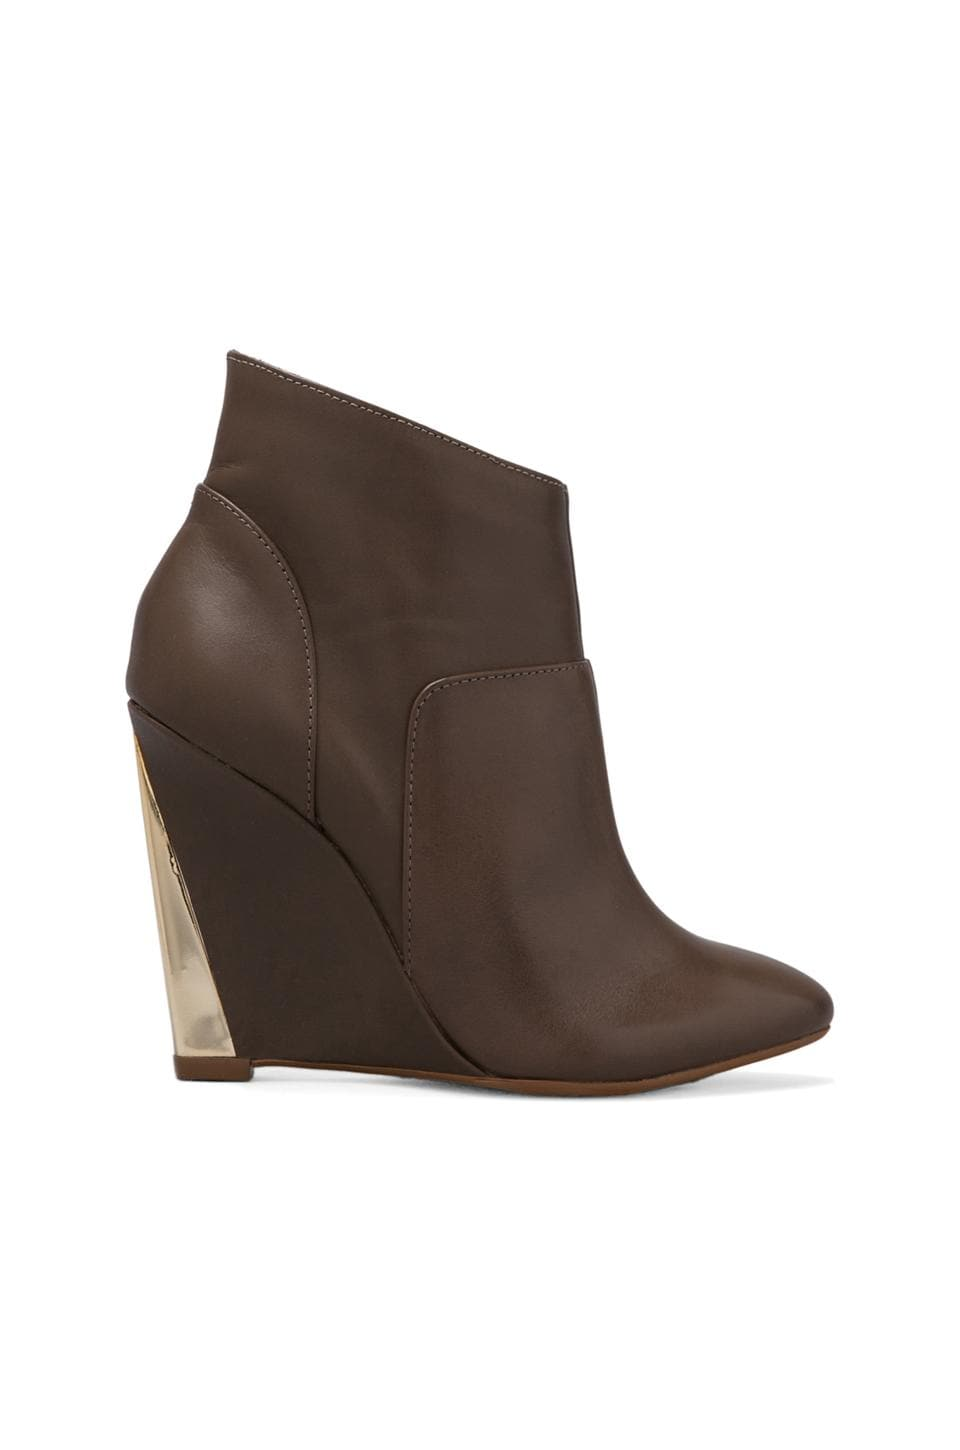 MADISON HARDING Debra Wedge Bootie in Oliva